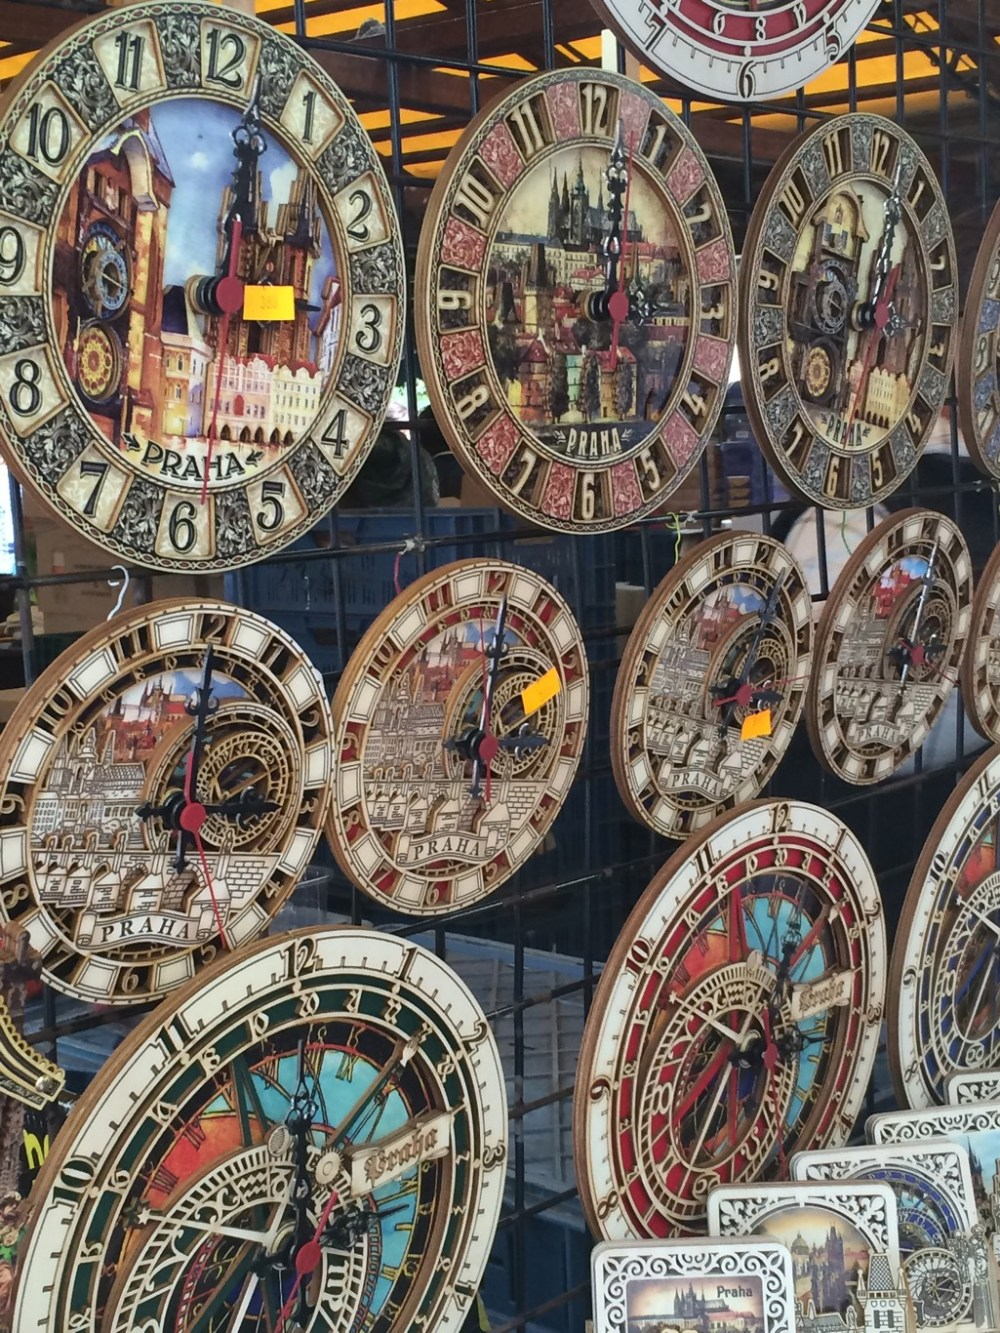 Offbeat Prague: Funky souvenir clocks at the Havelska souvenir market